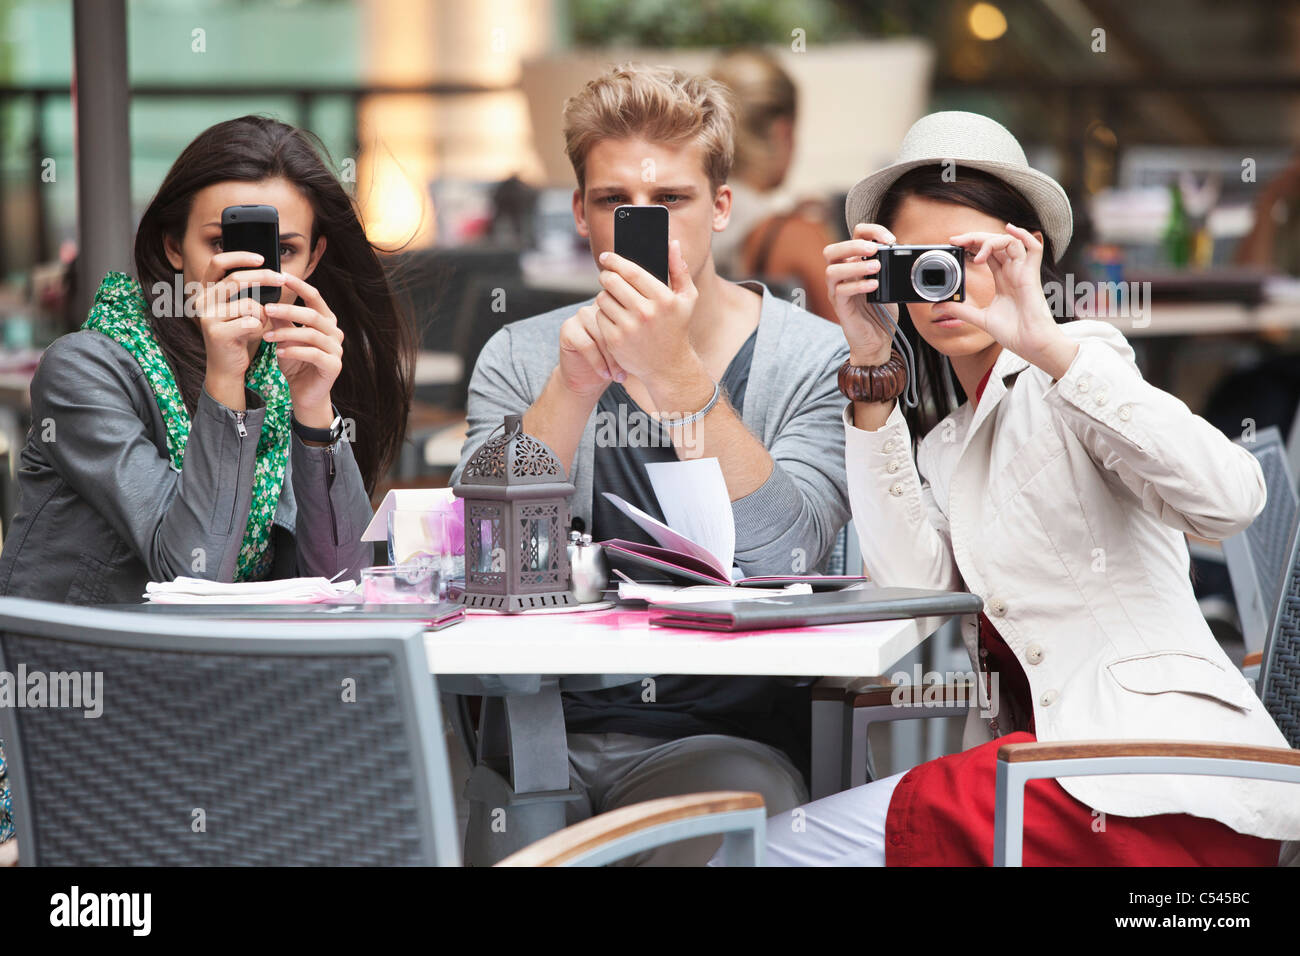 Three young friends using electronic gadgets in a restaurant - Stock Image